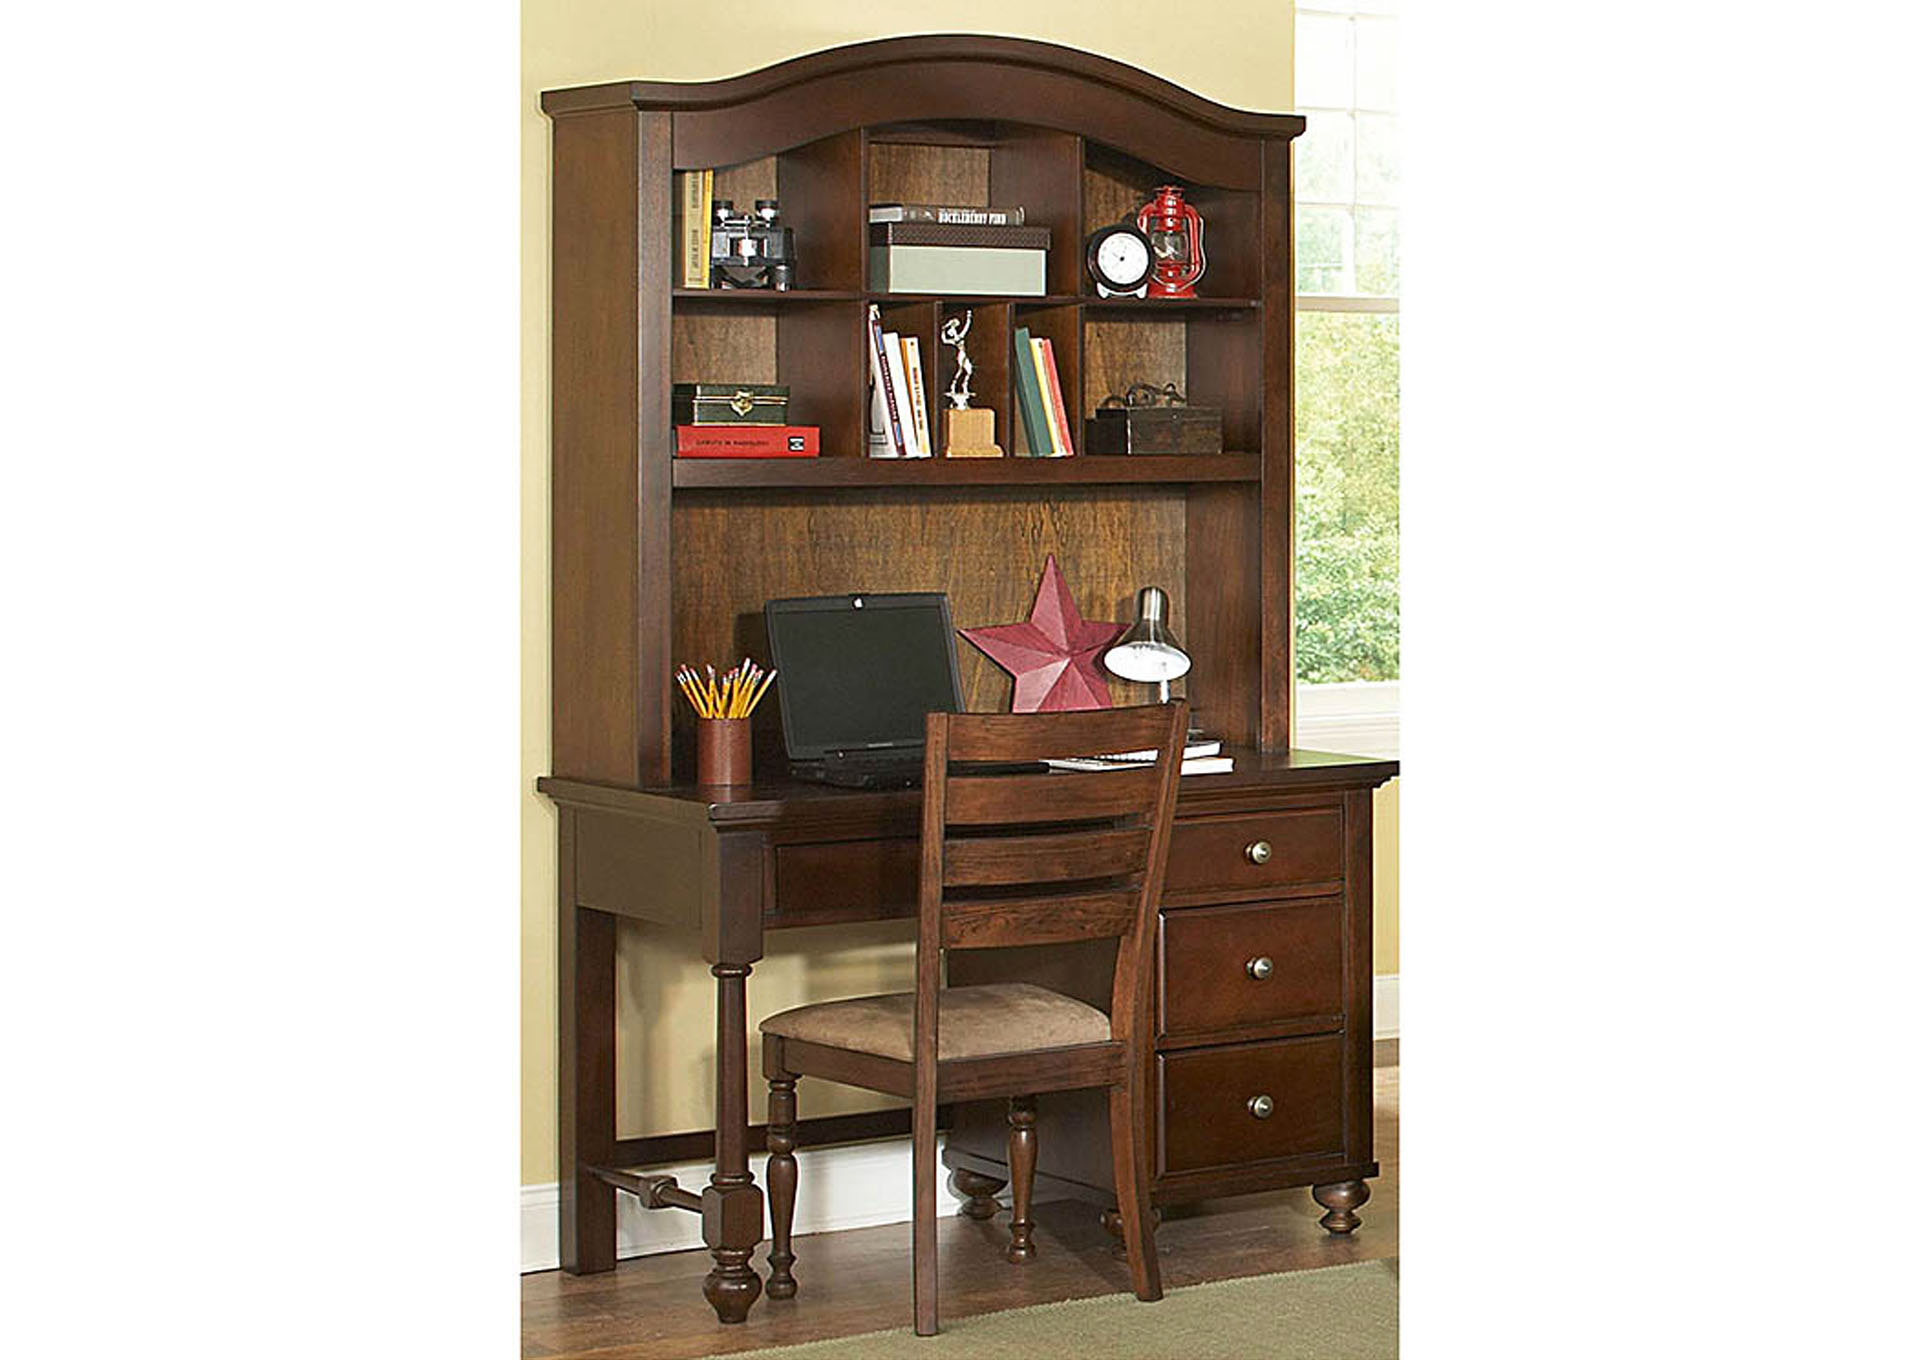 Aris Warm Brown Cherry Computer Writing Desk Computer Desk w/Hutch,Homelegance